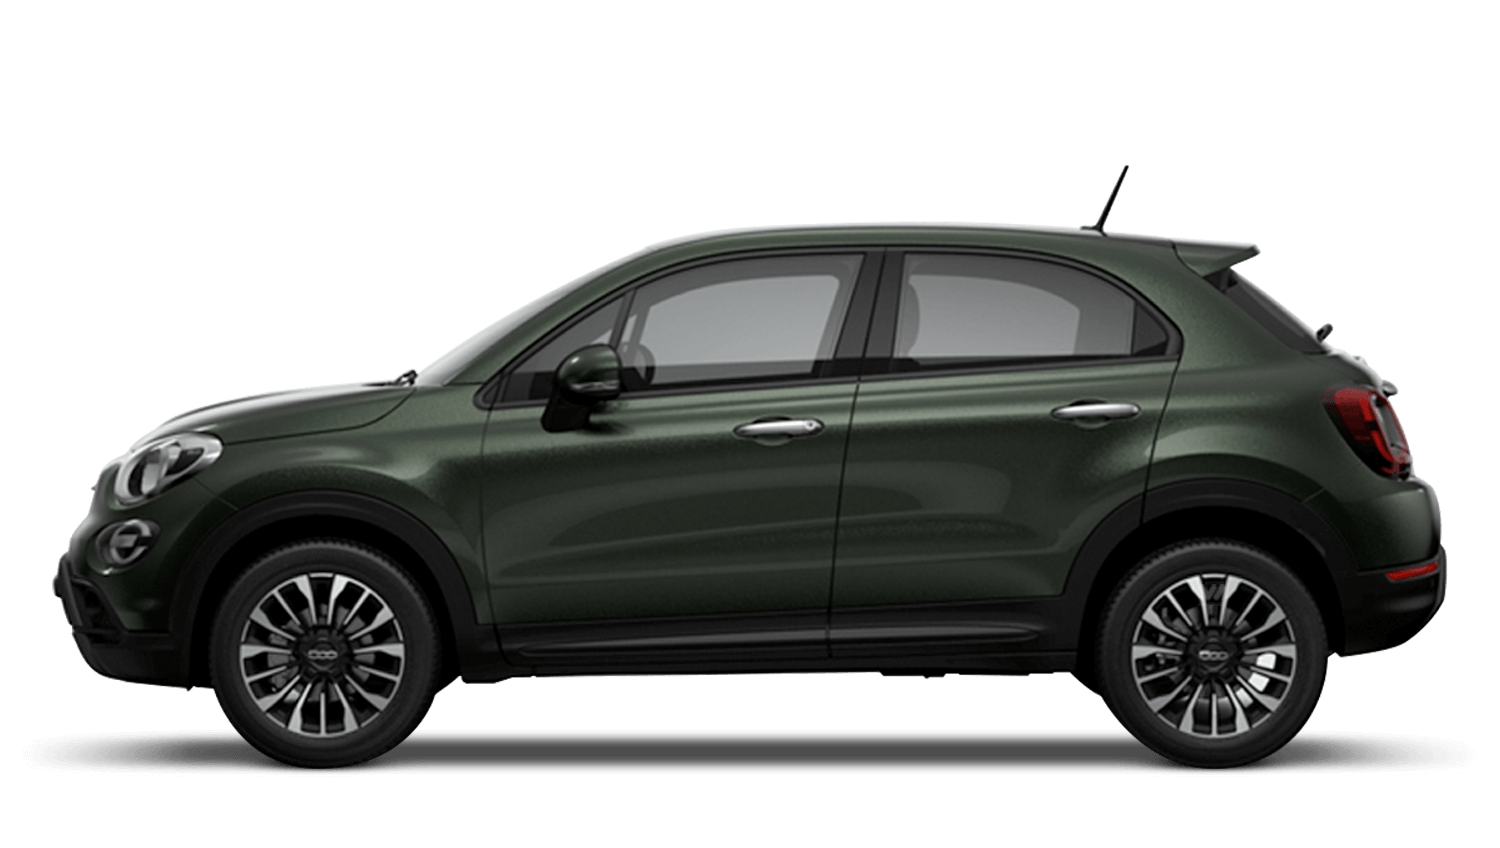 Techno Green (Metallic) New Fiat 500X Cross Look